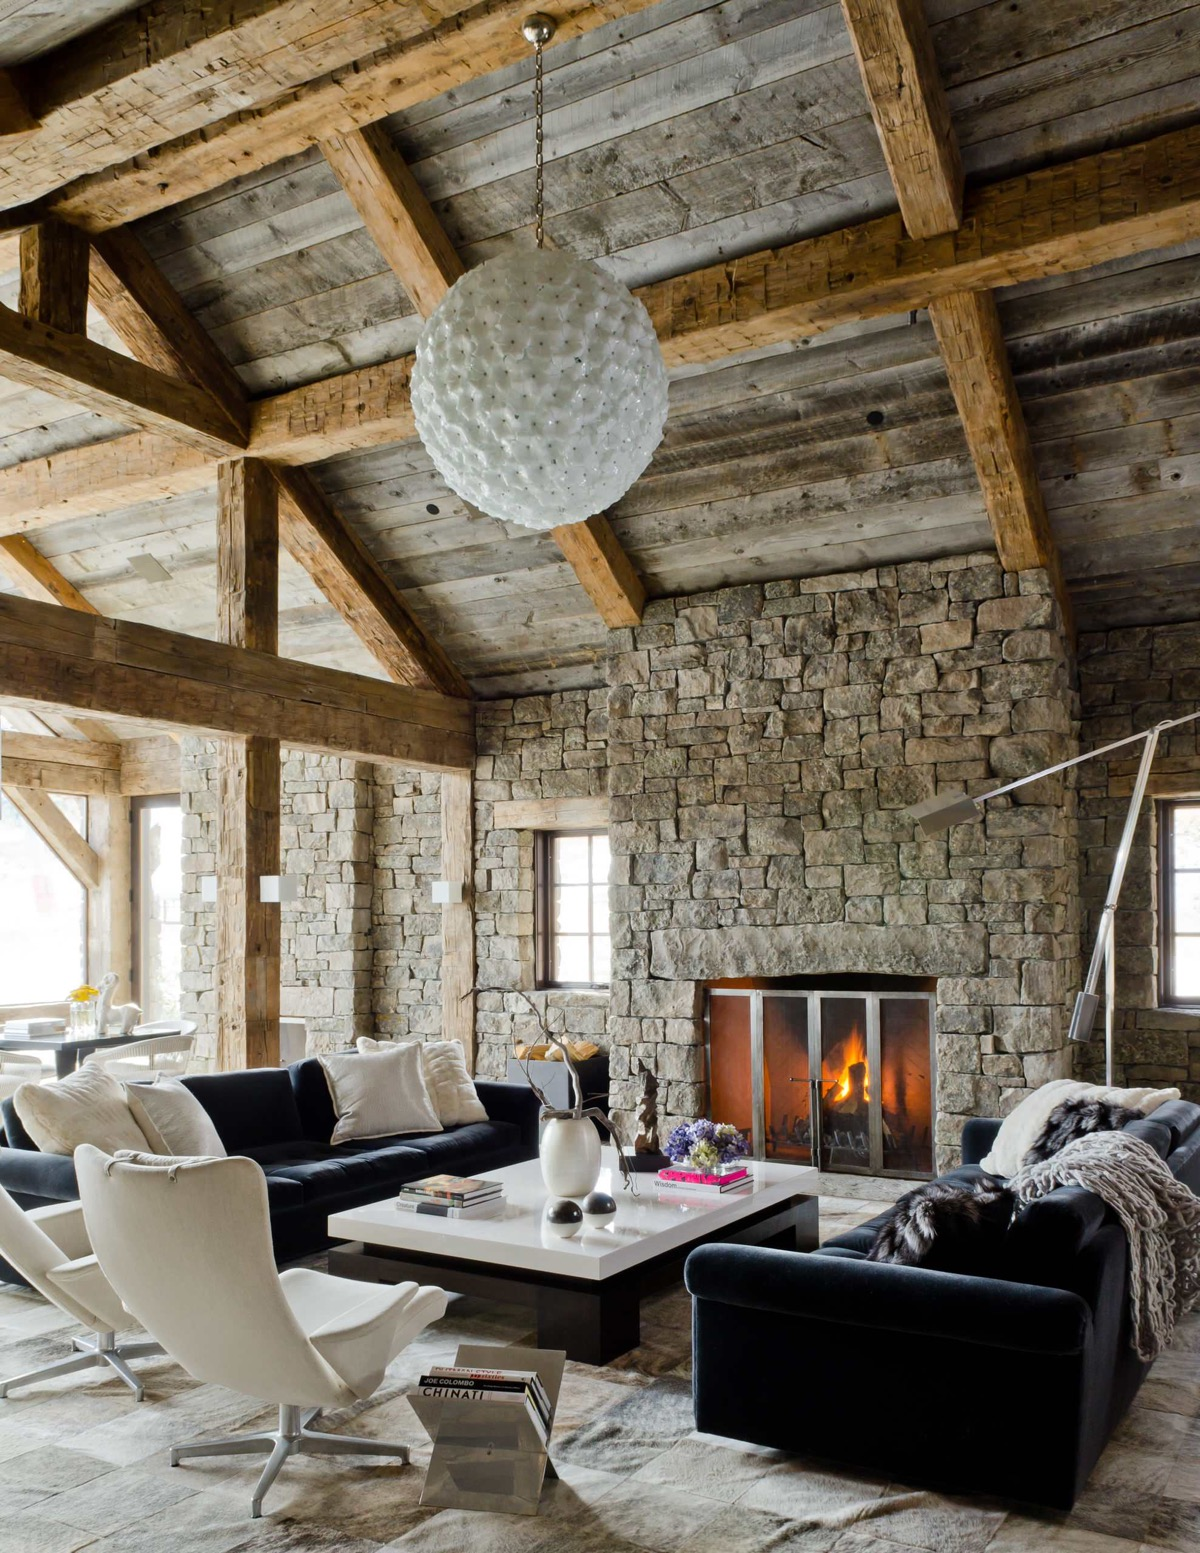 Dimpled Chandelier Stone Fireplace Rustic Living Room Set